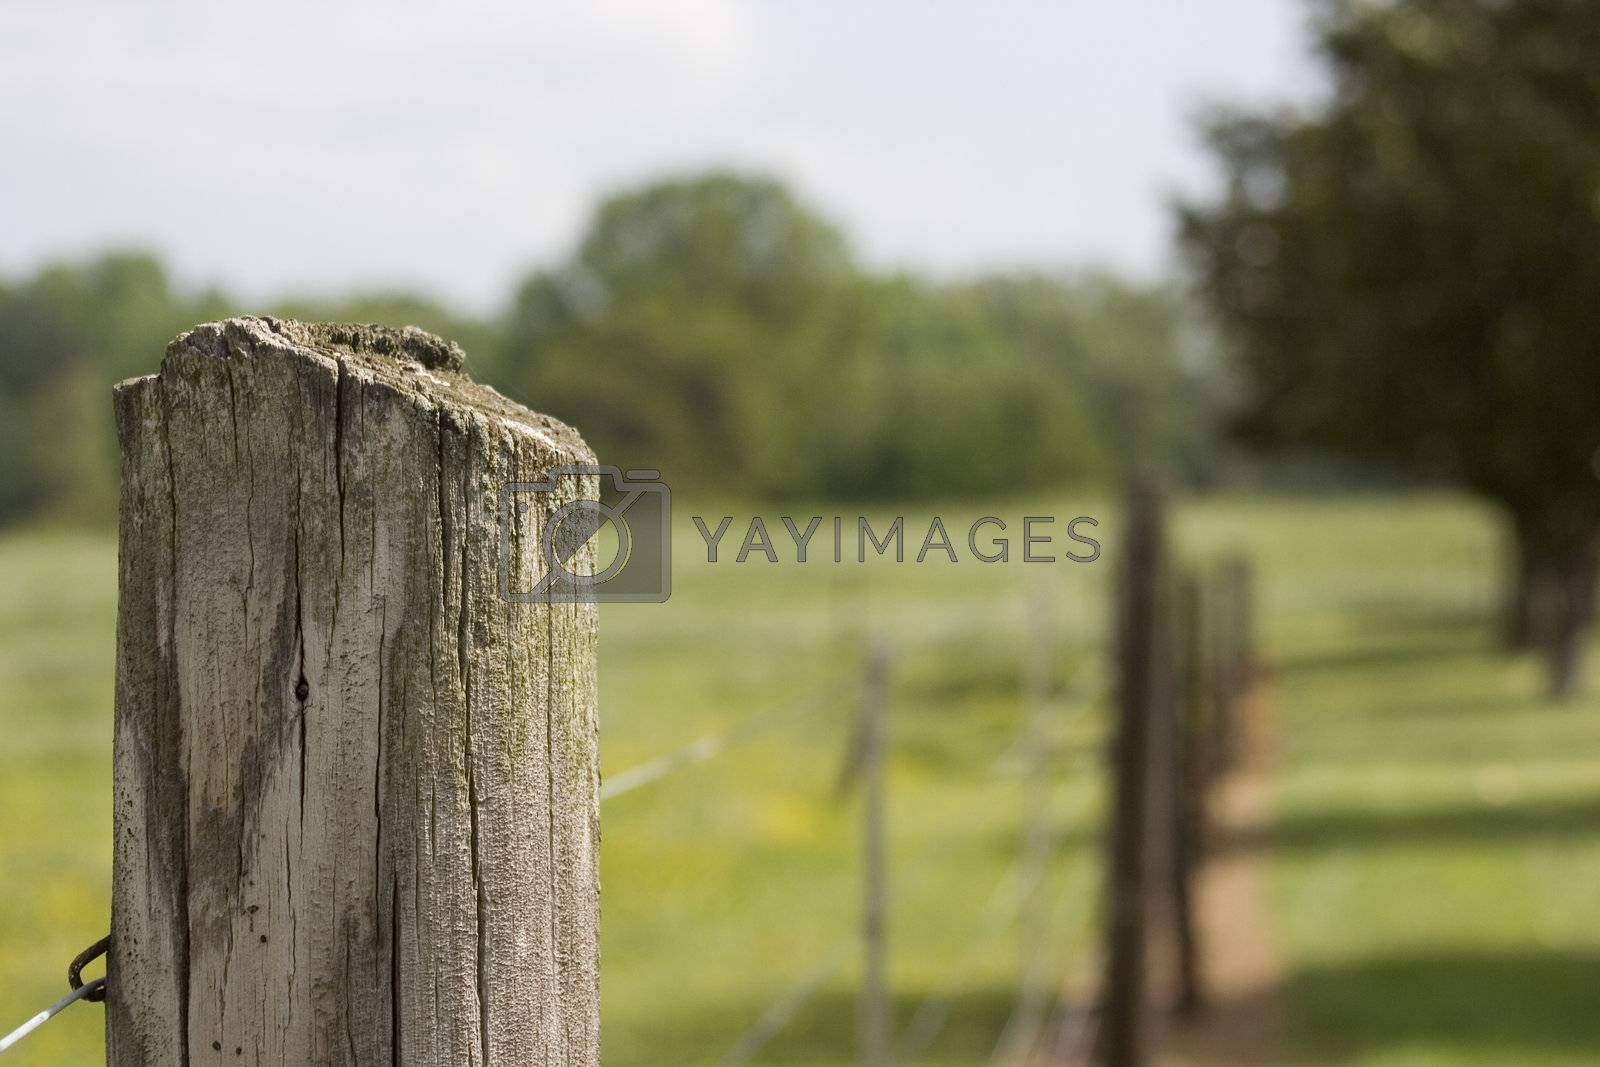 A wooden post for an electric fence with shallow depth of field.